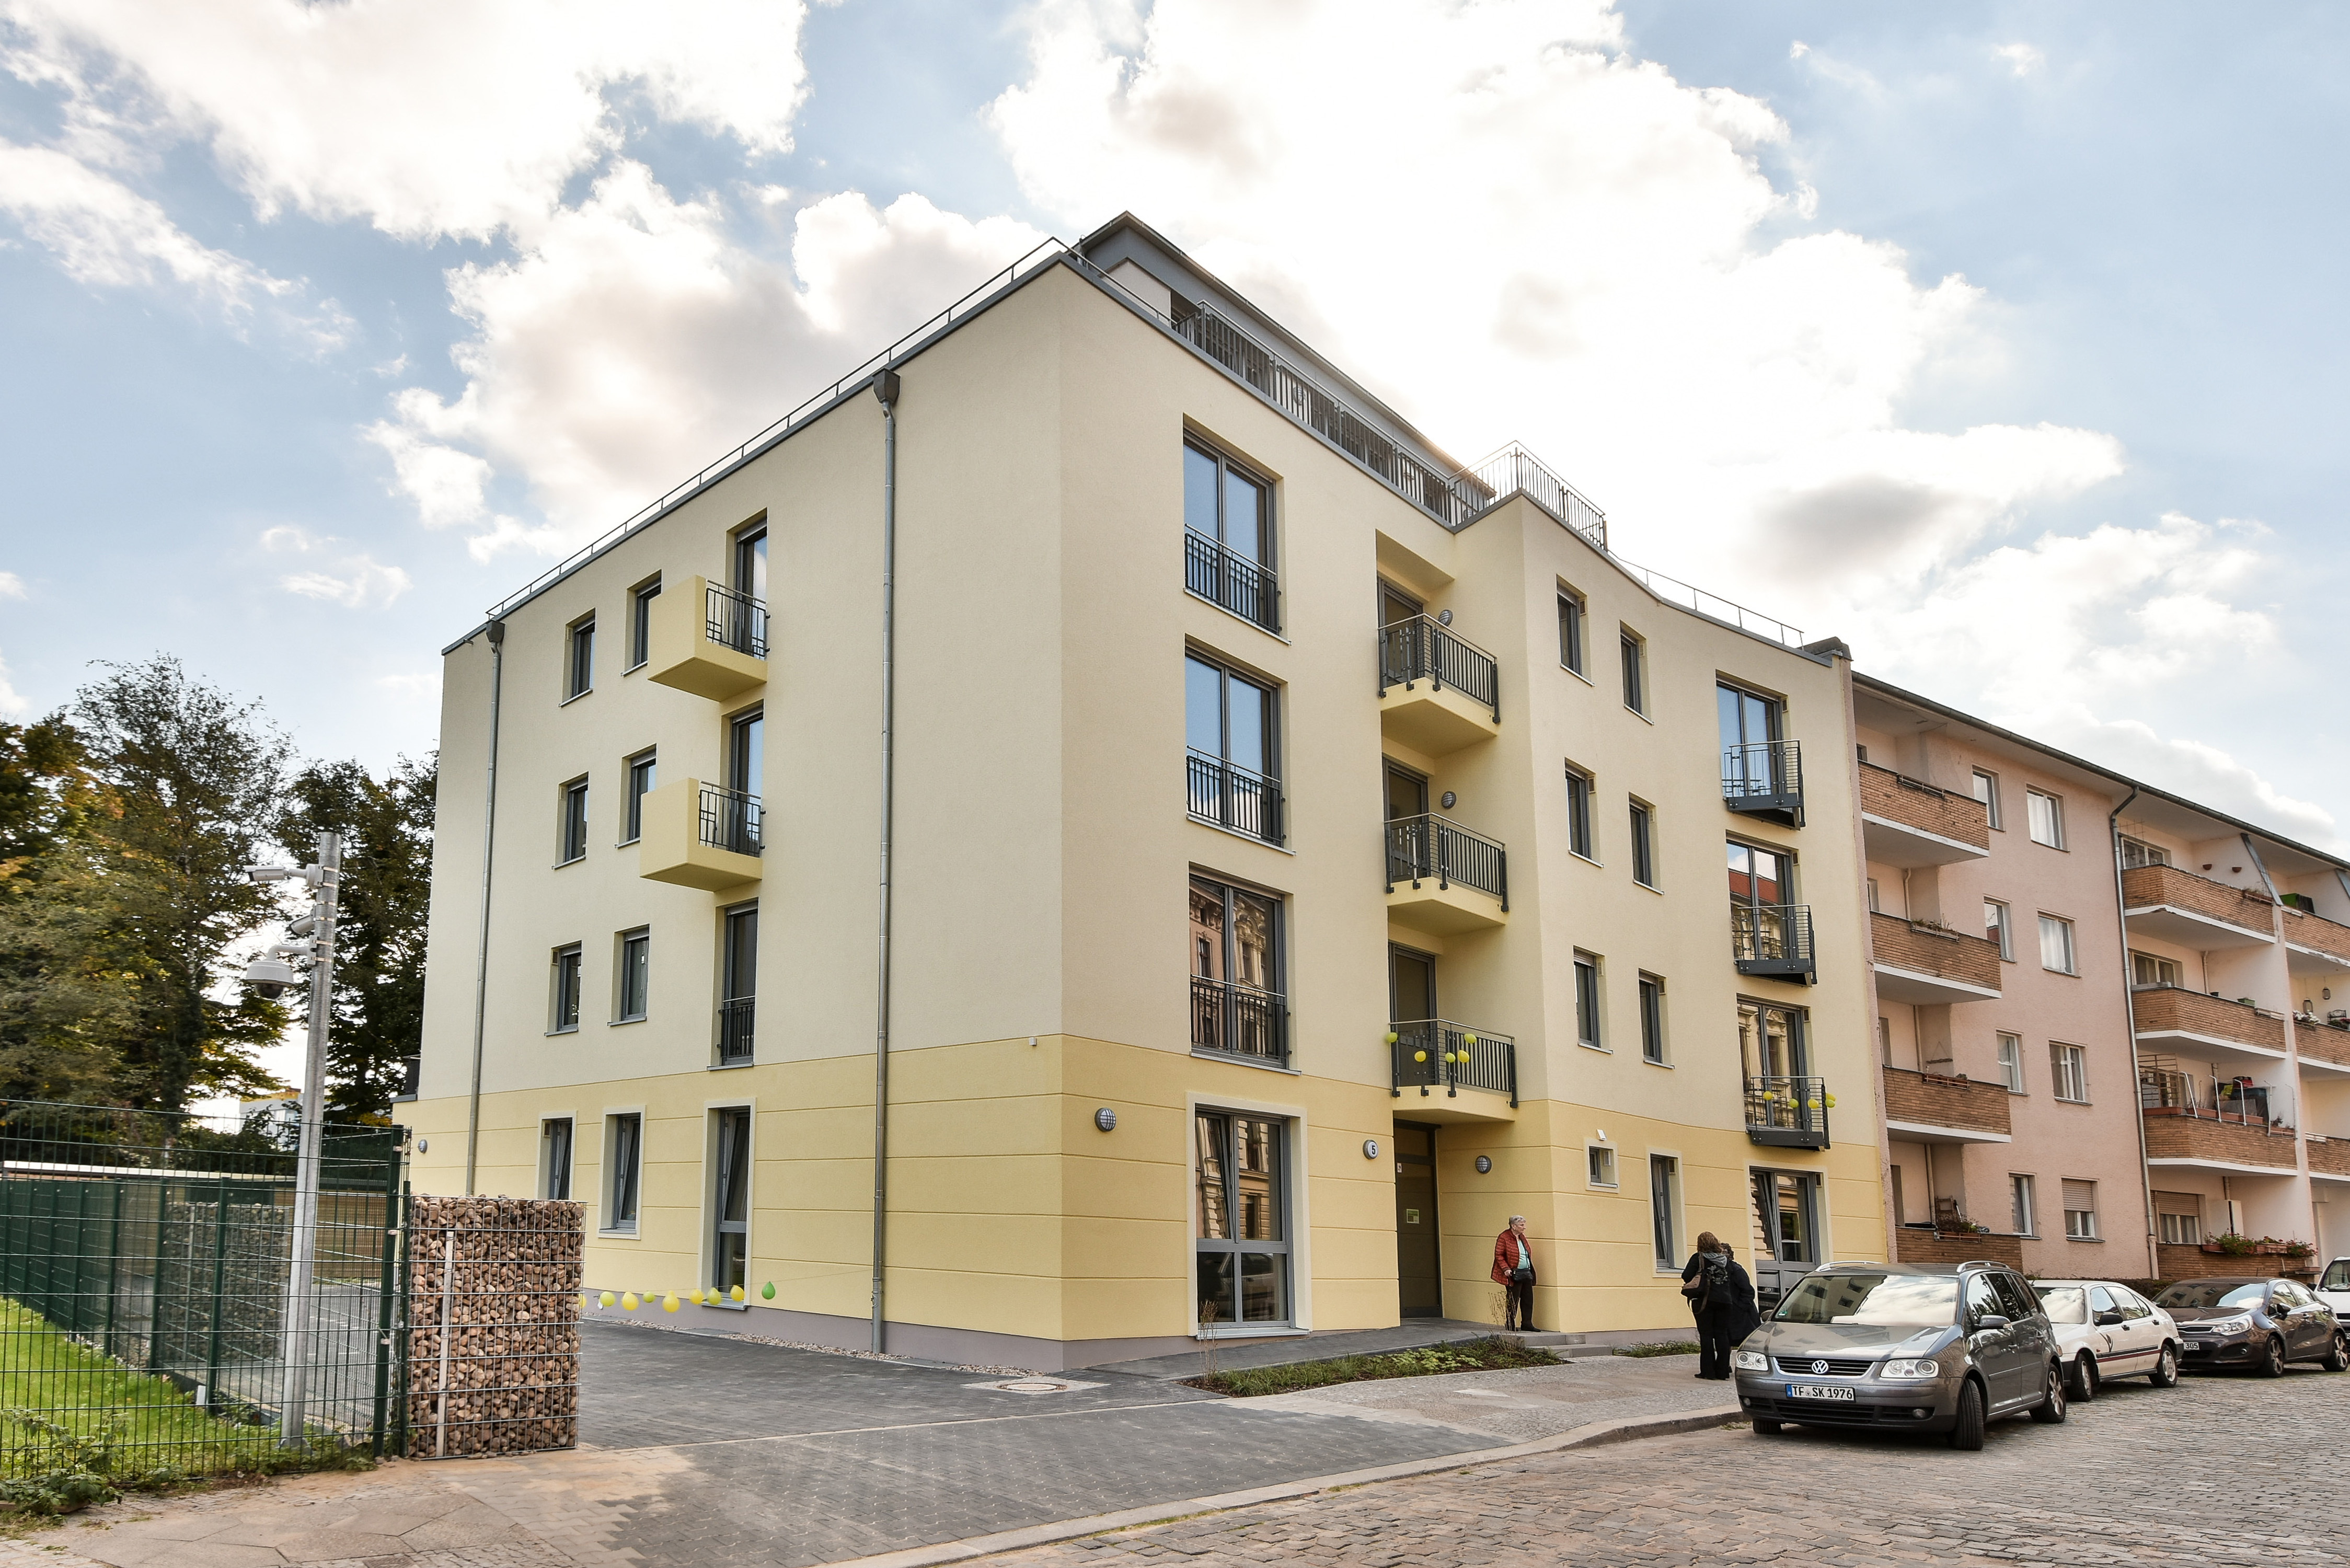 Therapie thema for Familienhaus berlin